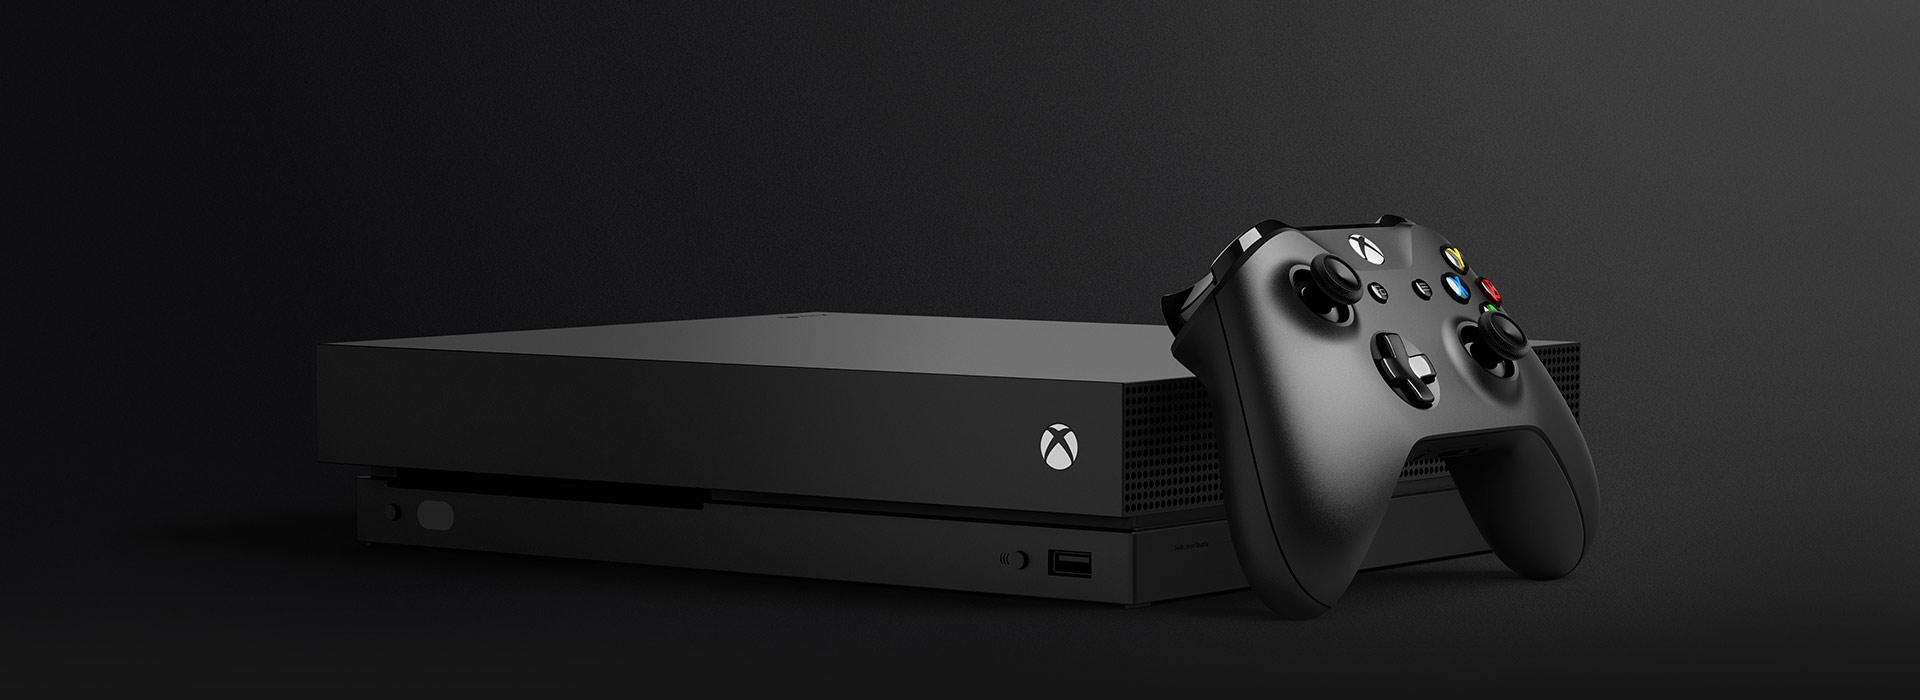 Xbox One X mit Xbox One Wireless Controller